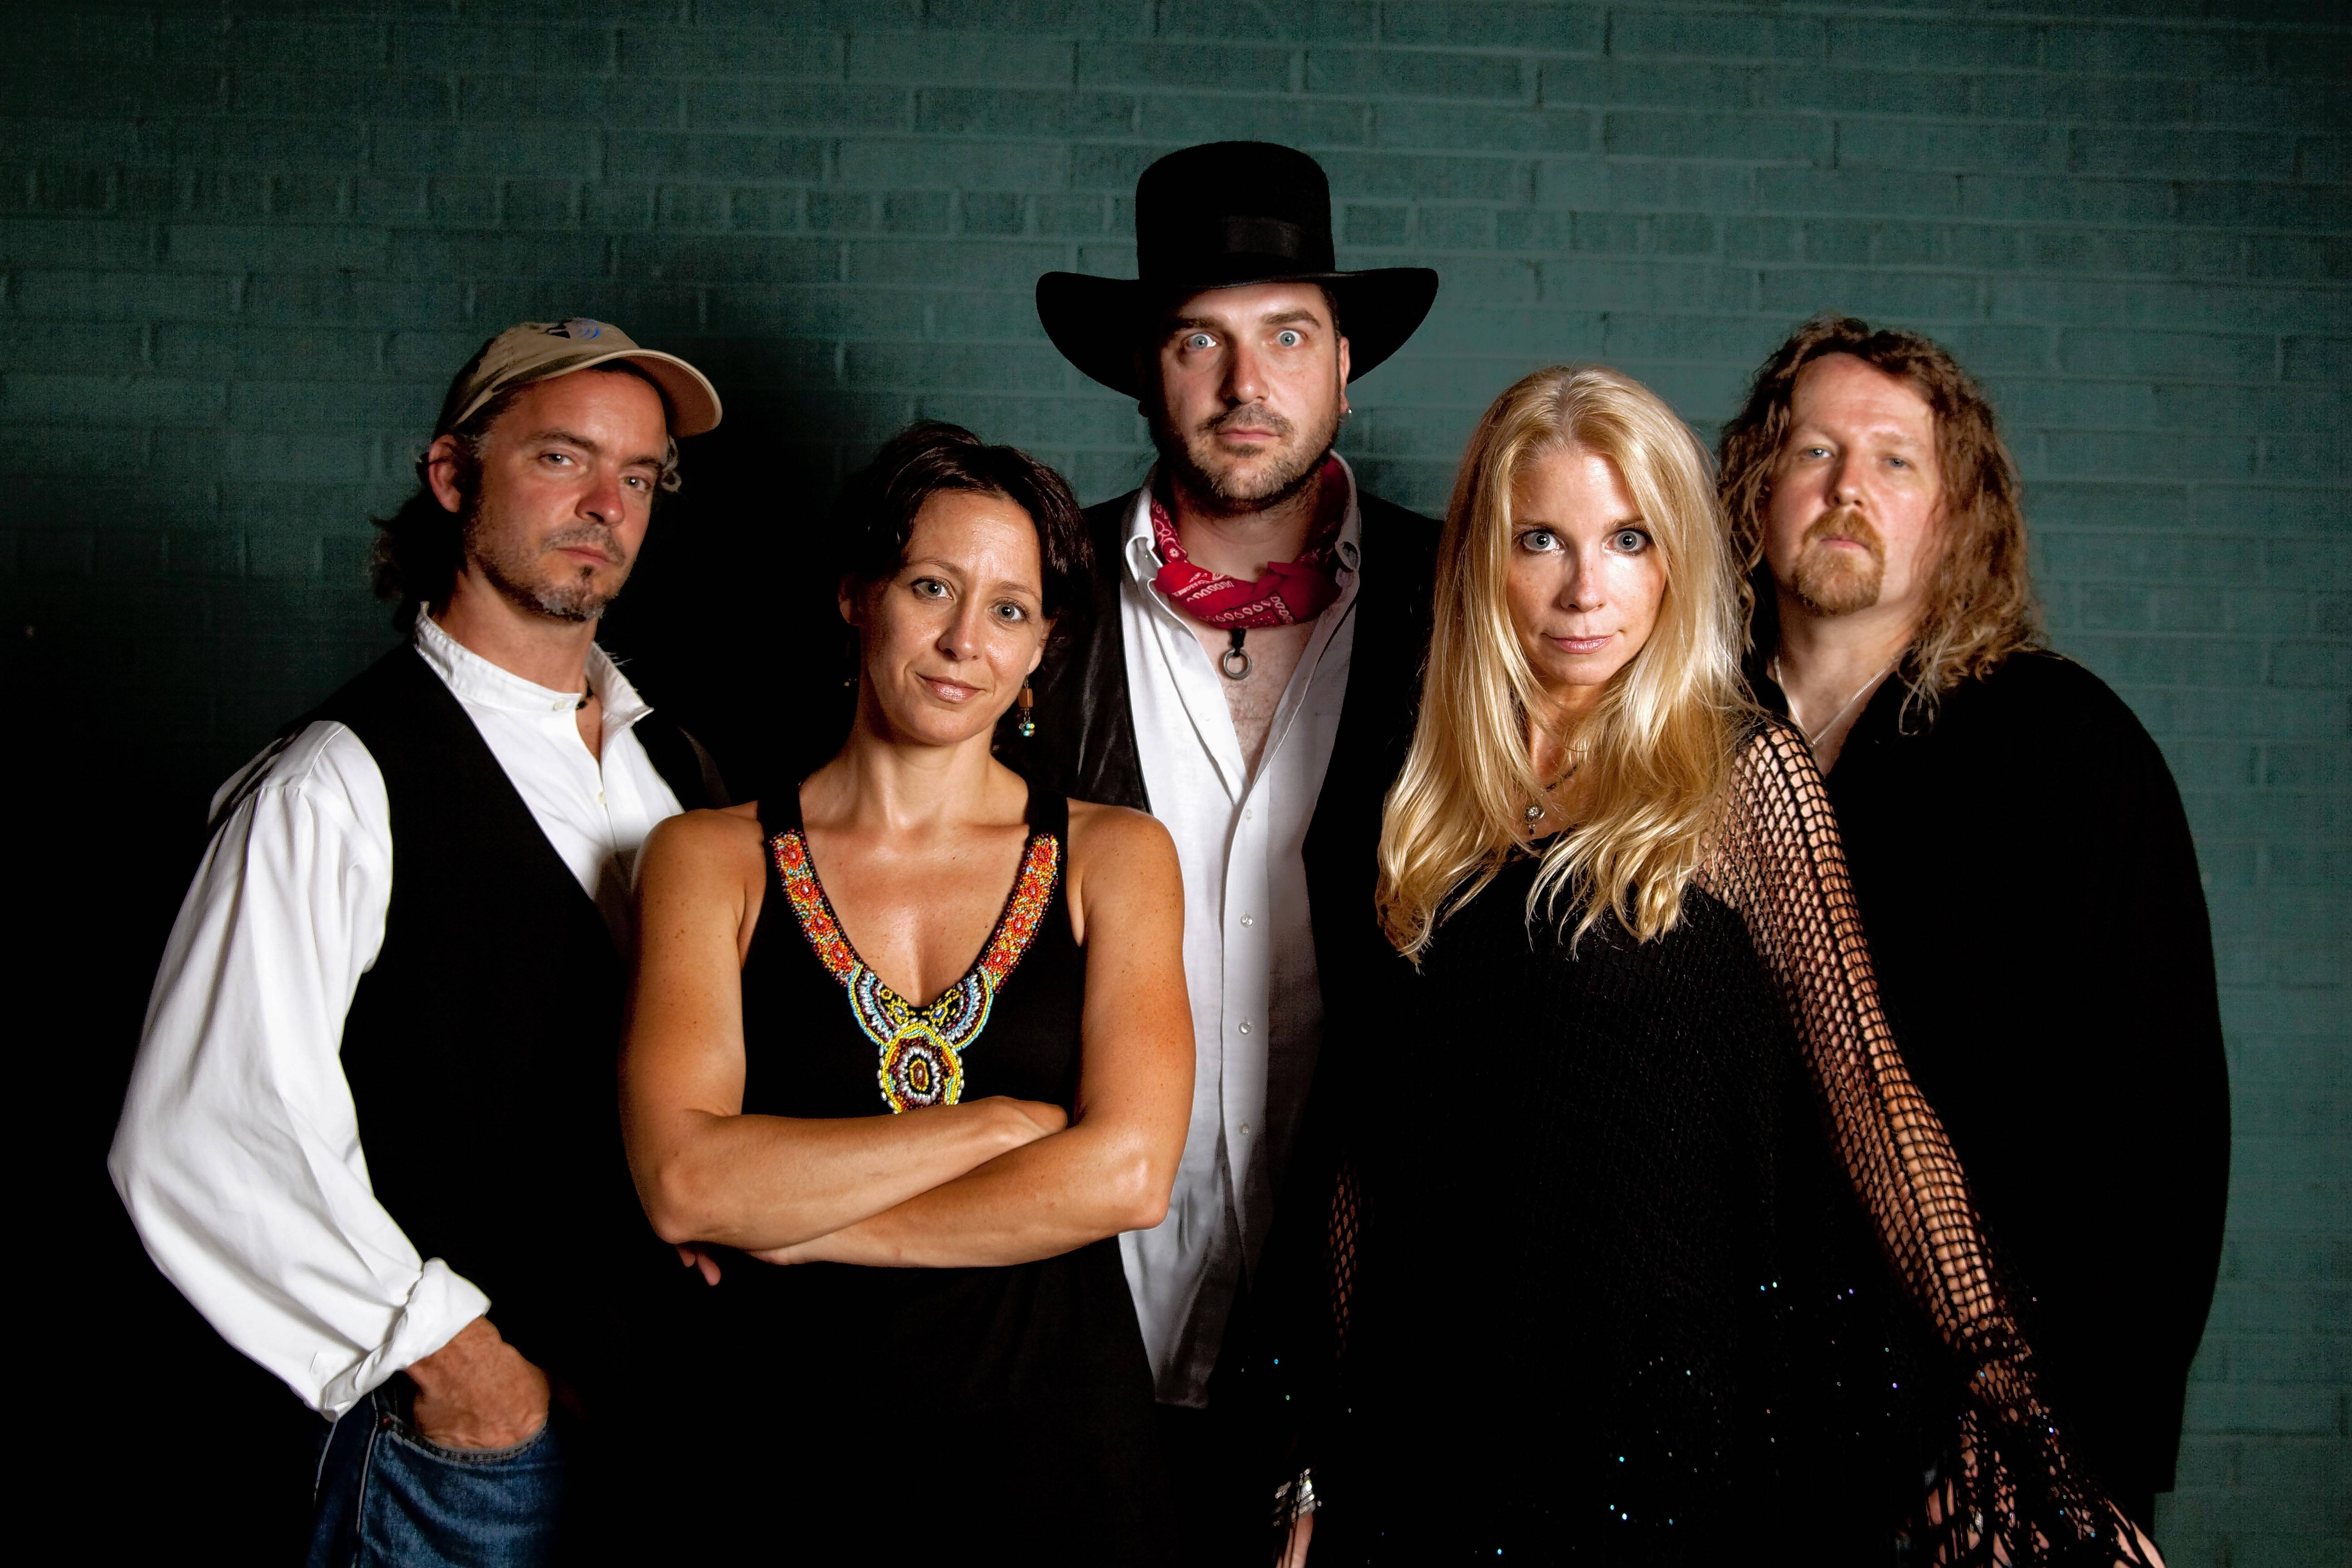 Fleetwood Mac-tribute band Tusk will perform at Schaumburg's Septemberfest at 5:30 p.m. Monday, Sept. 4.